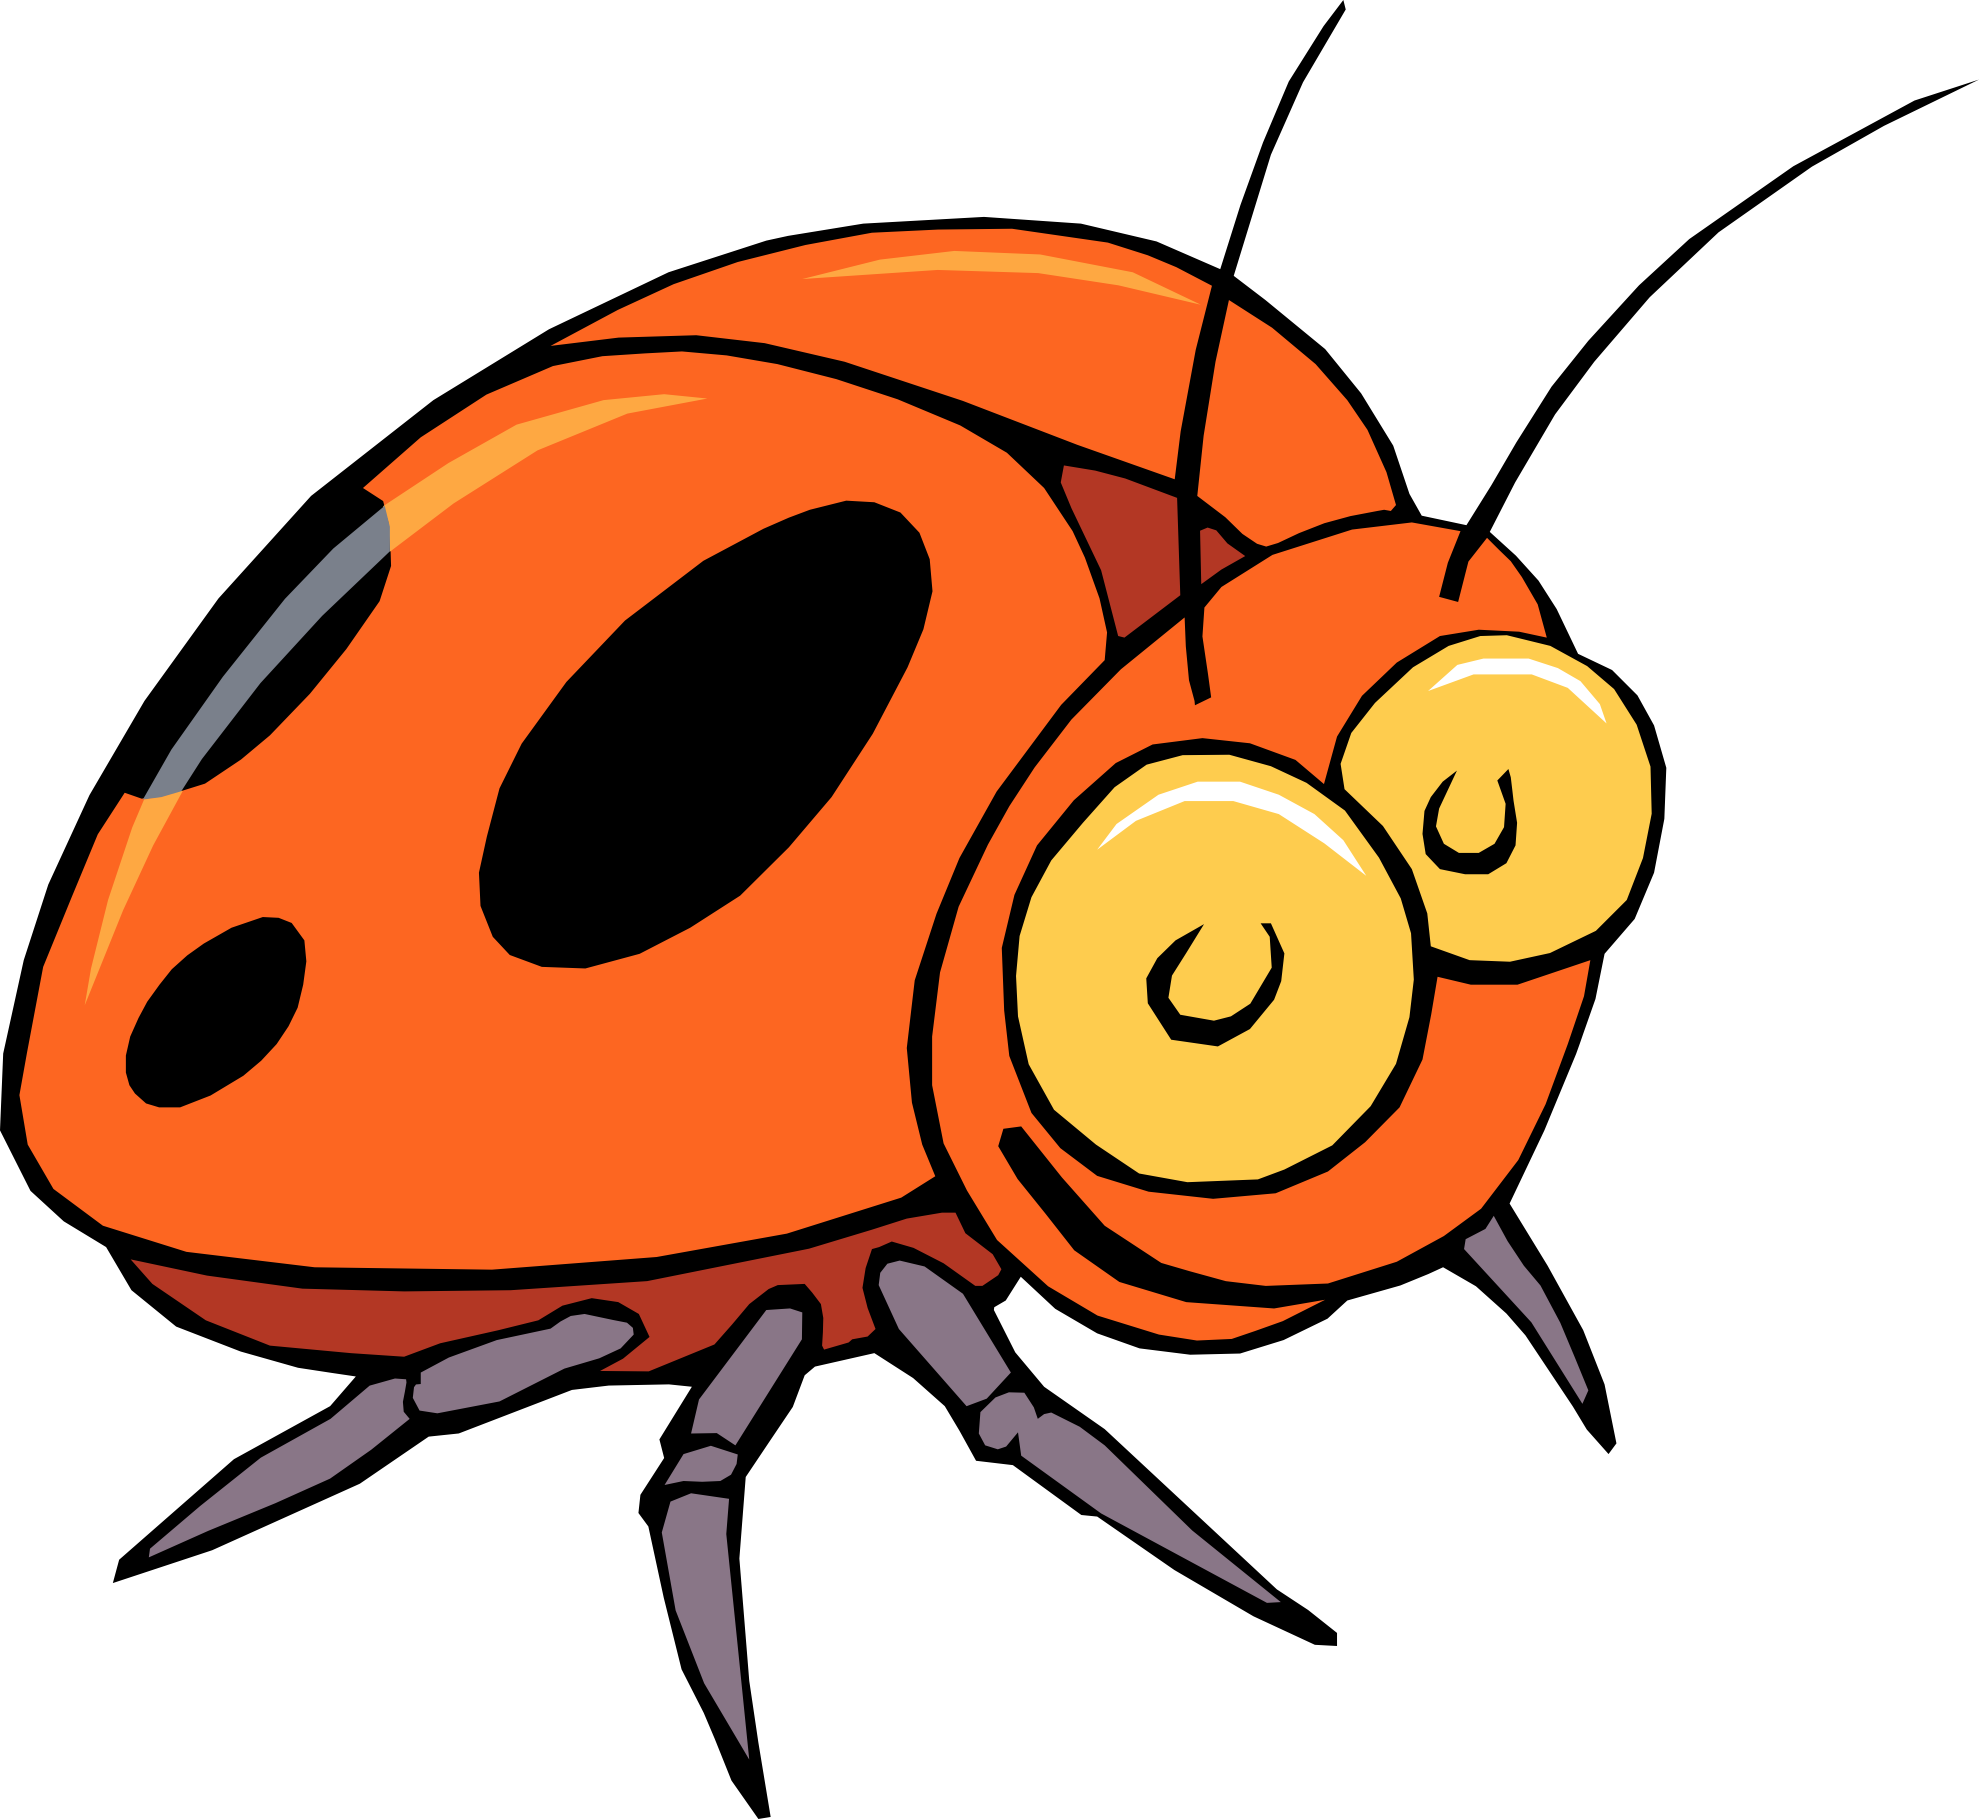 Drawing bugs kid. Insect clipart for kids